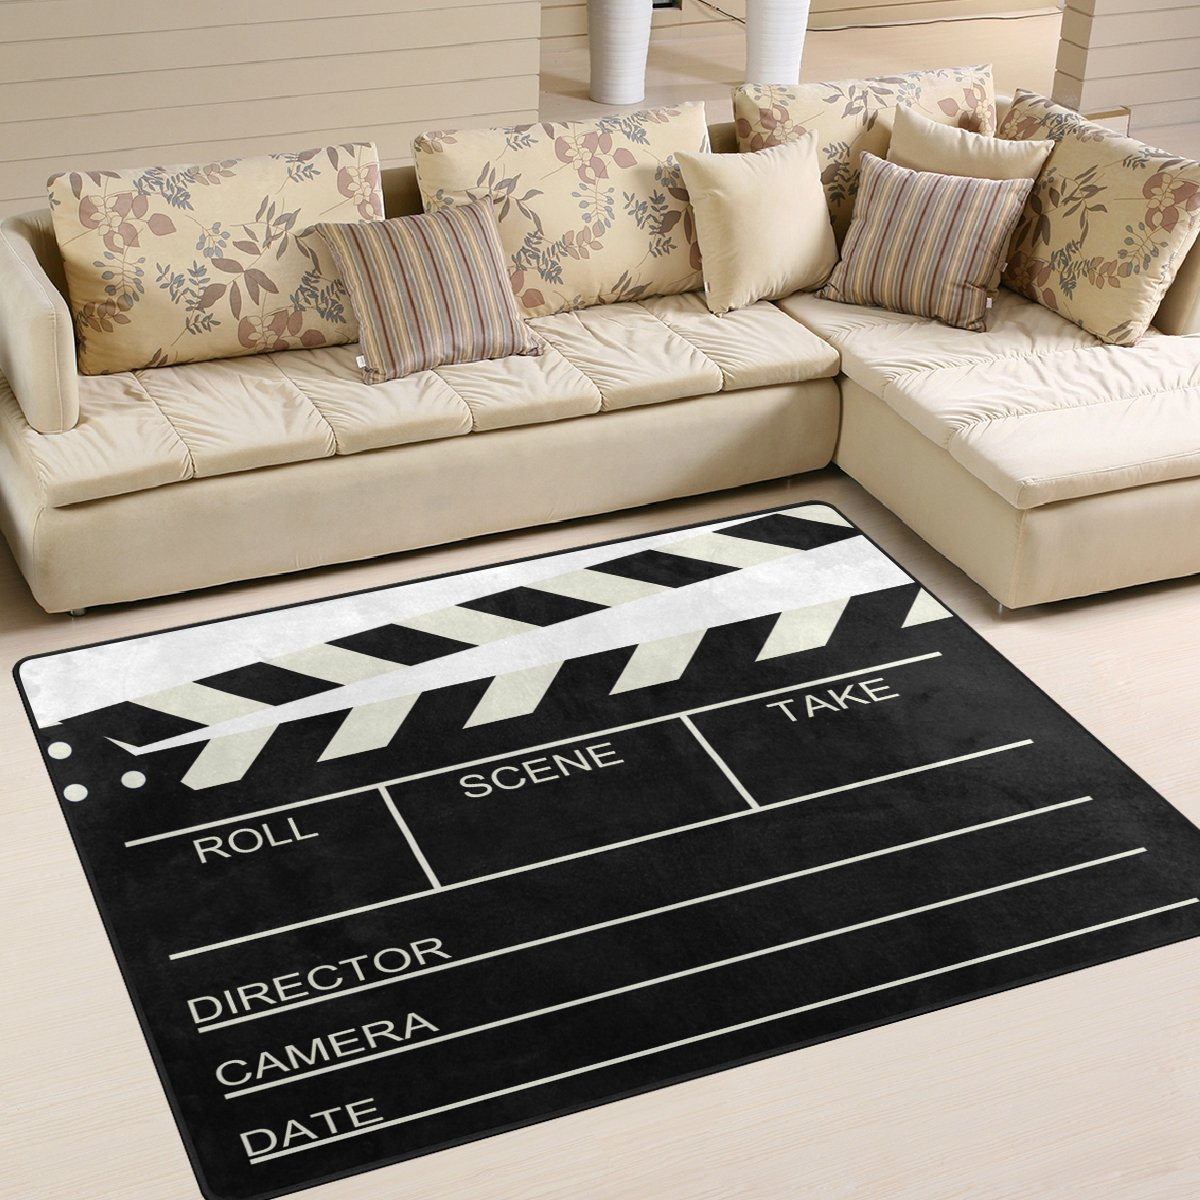 ALAZA Blank Old Cinema Movie Clapboard Area Rug Rugs for Living Room Bedroom 5'3'' x4'